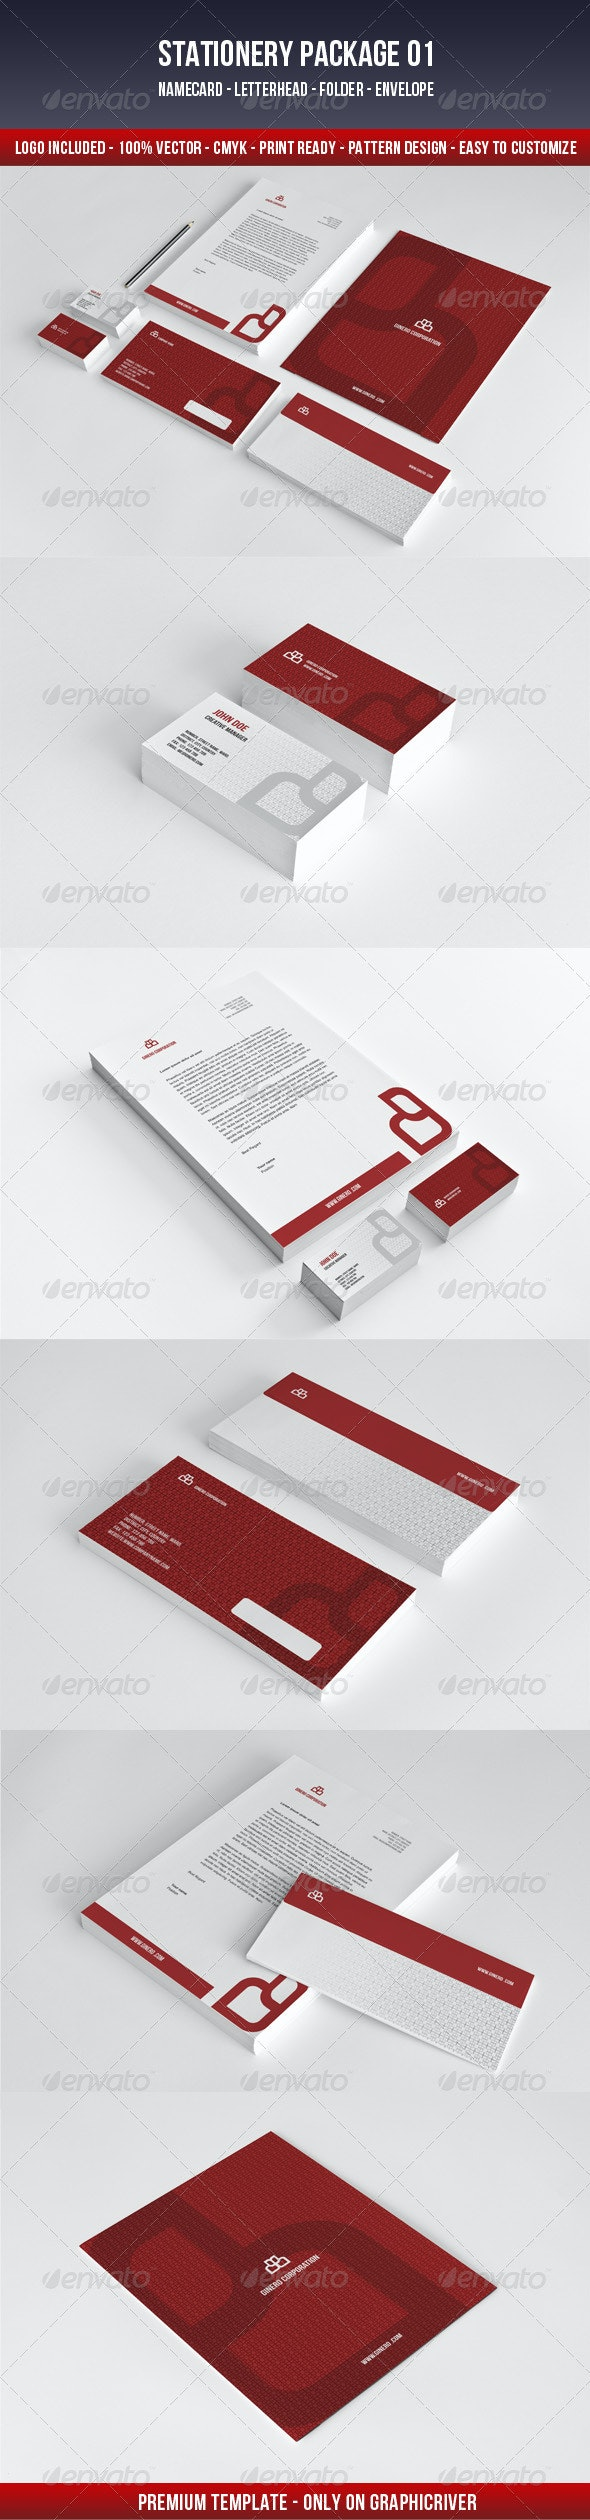 Ginero Corporation - Stationery Print Templates